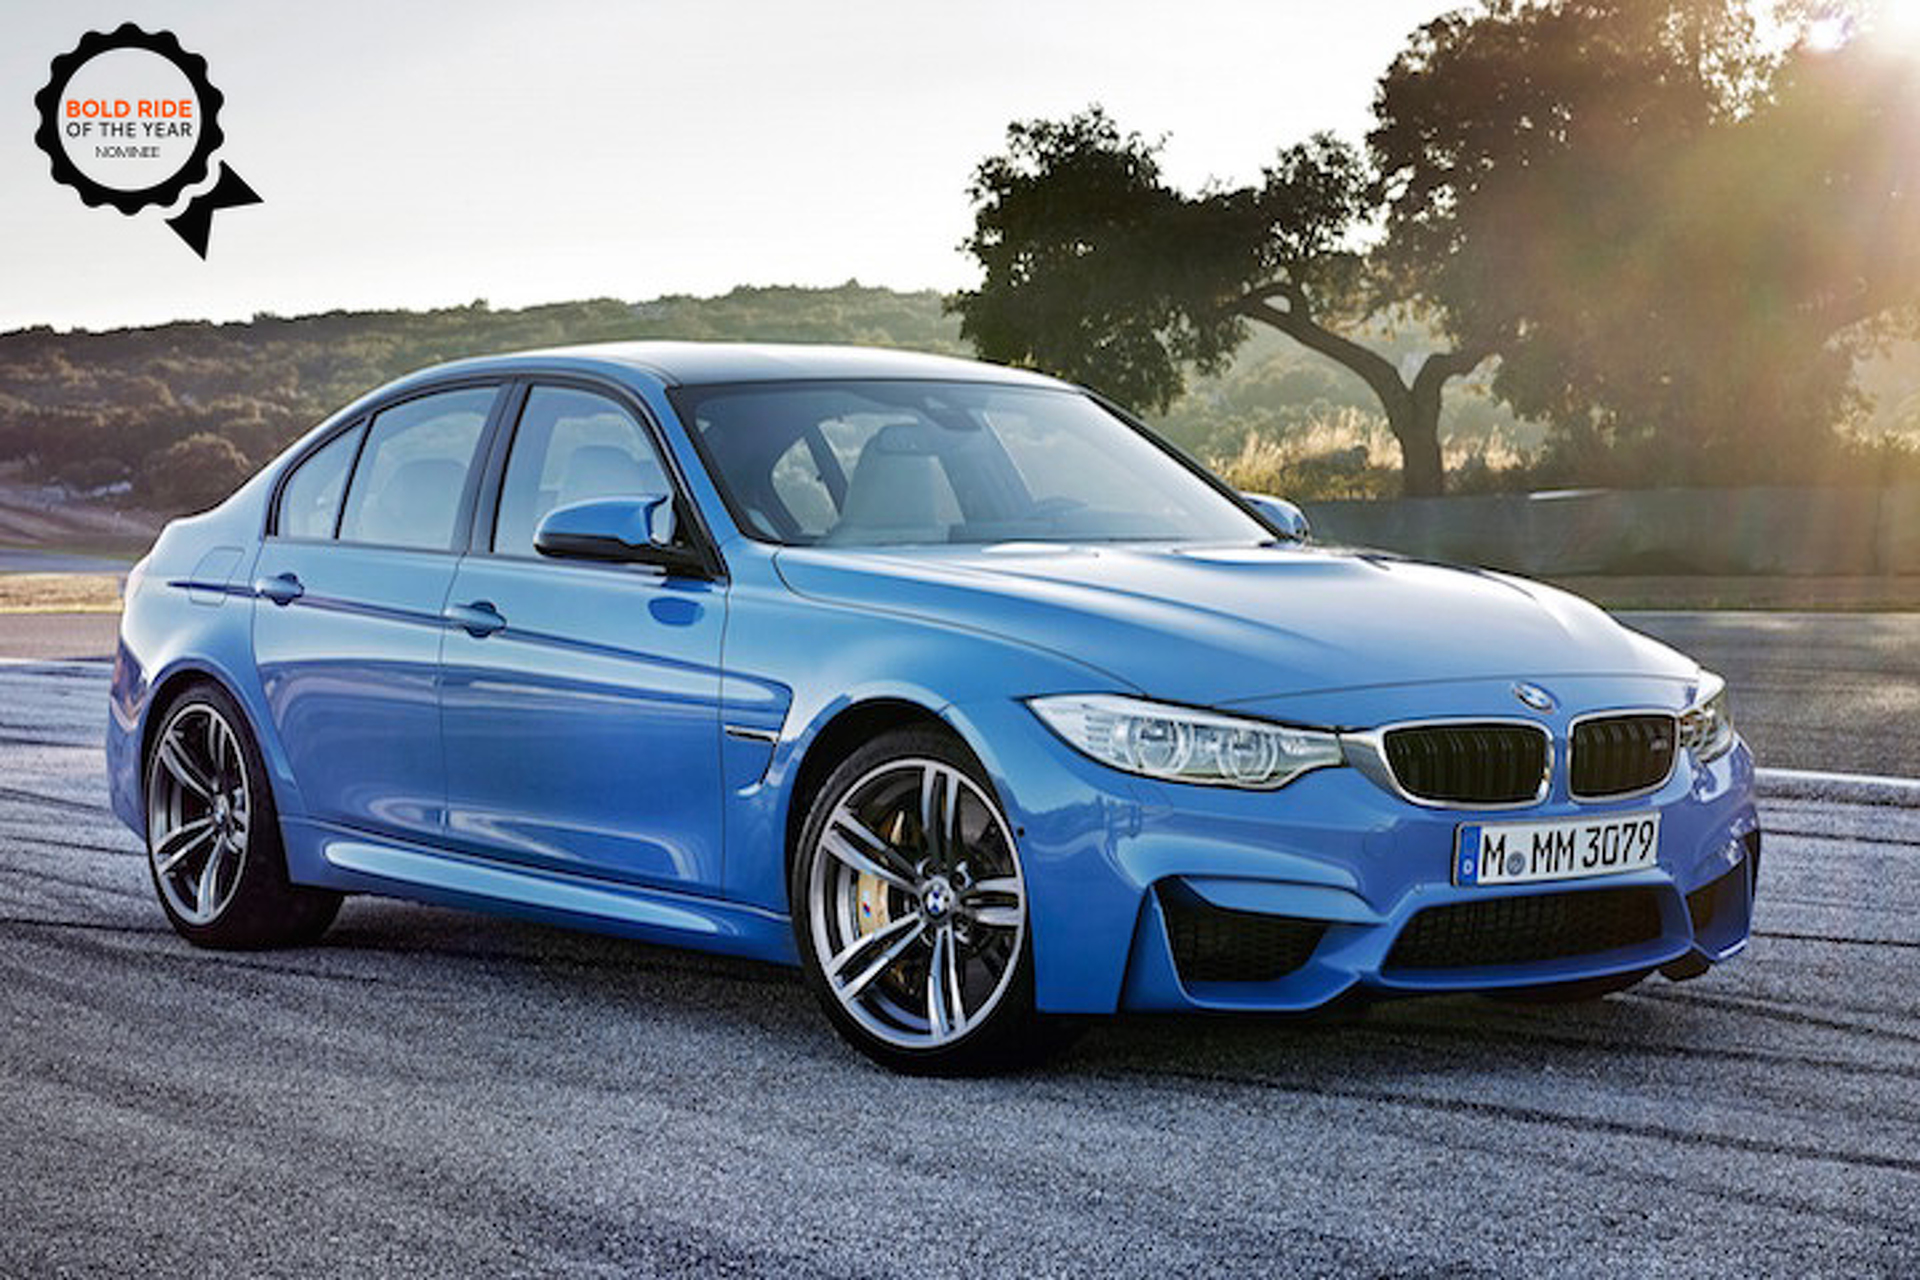 2015 Bold Ride of the Year: The Nominees